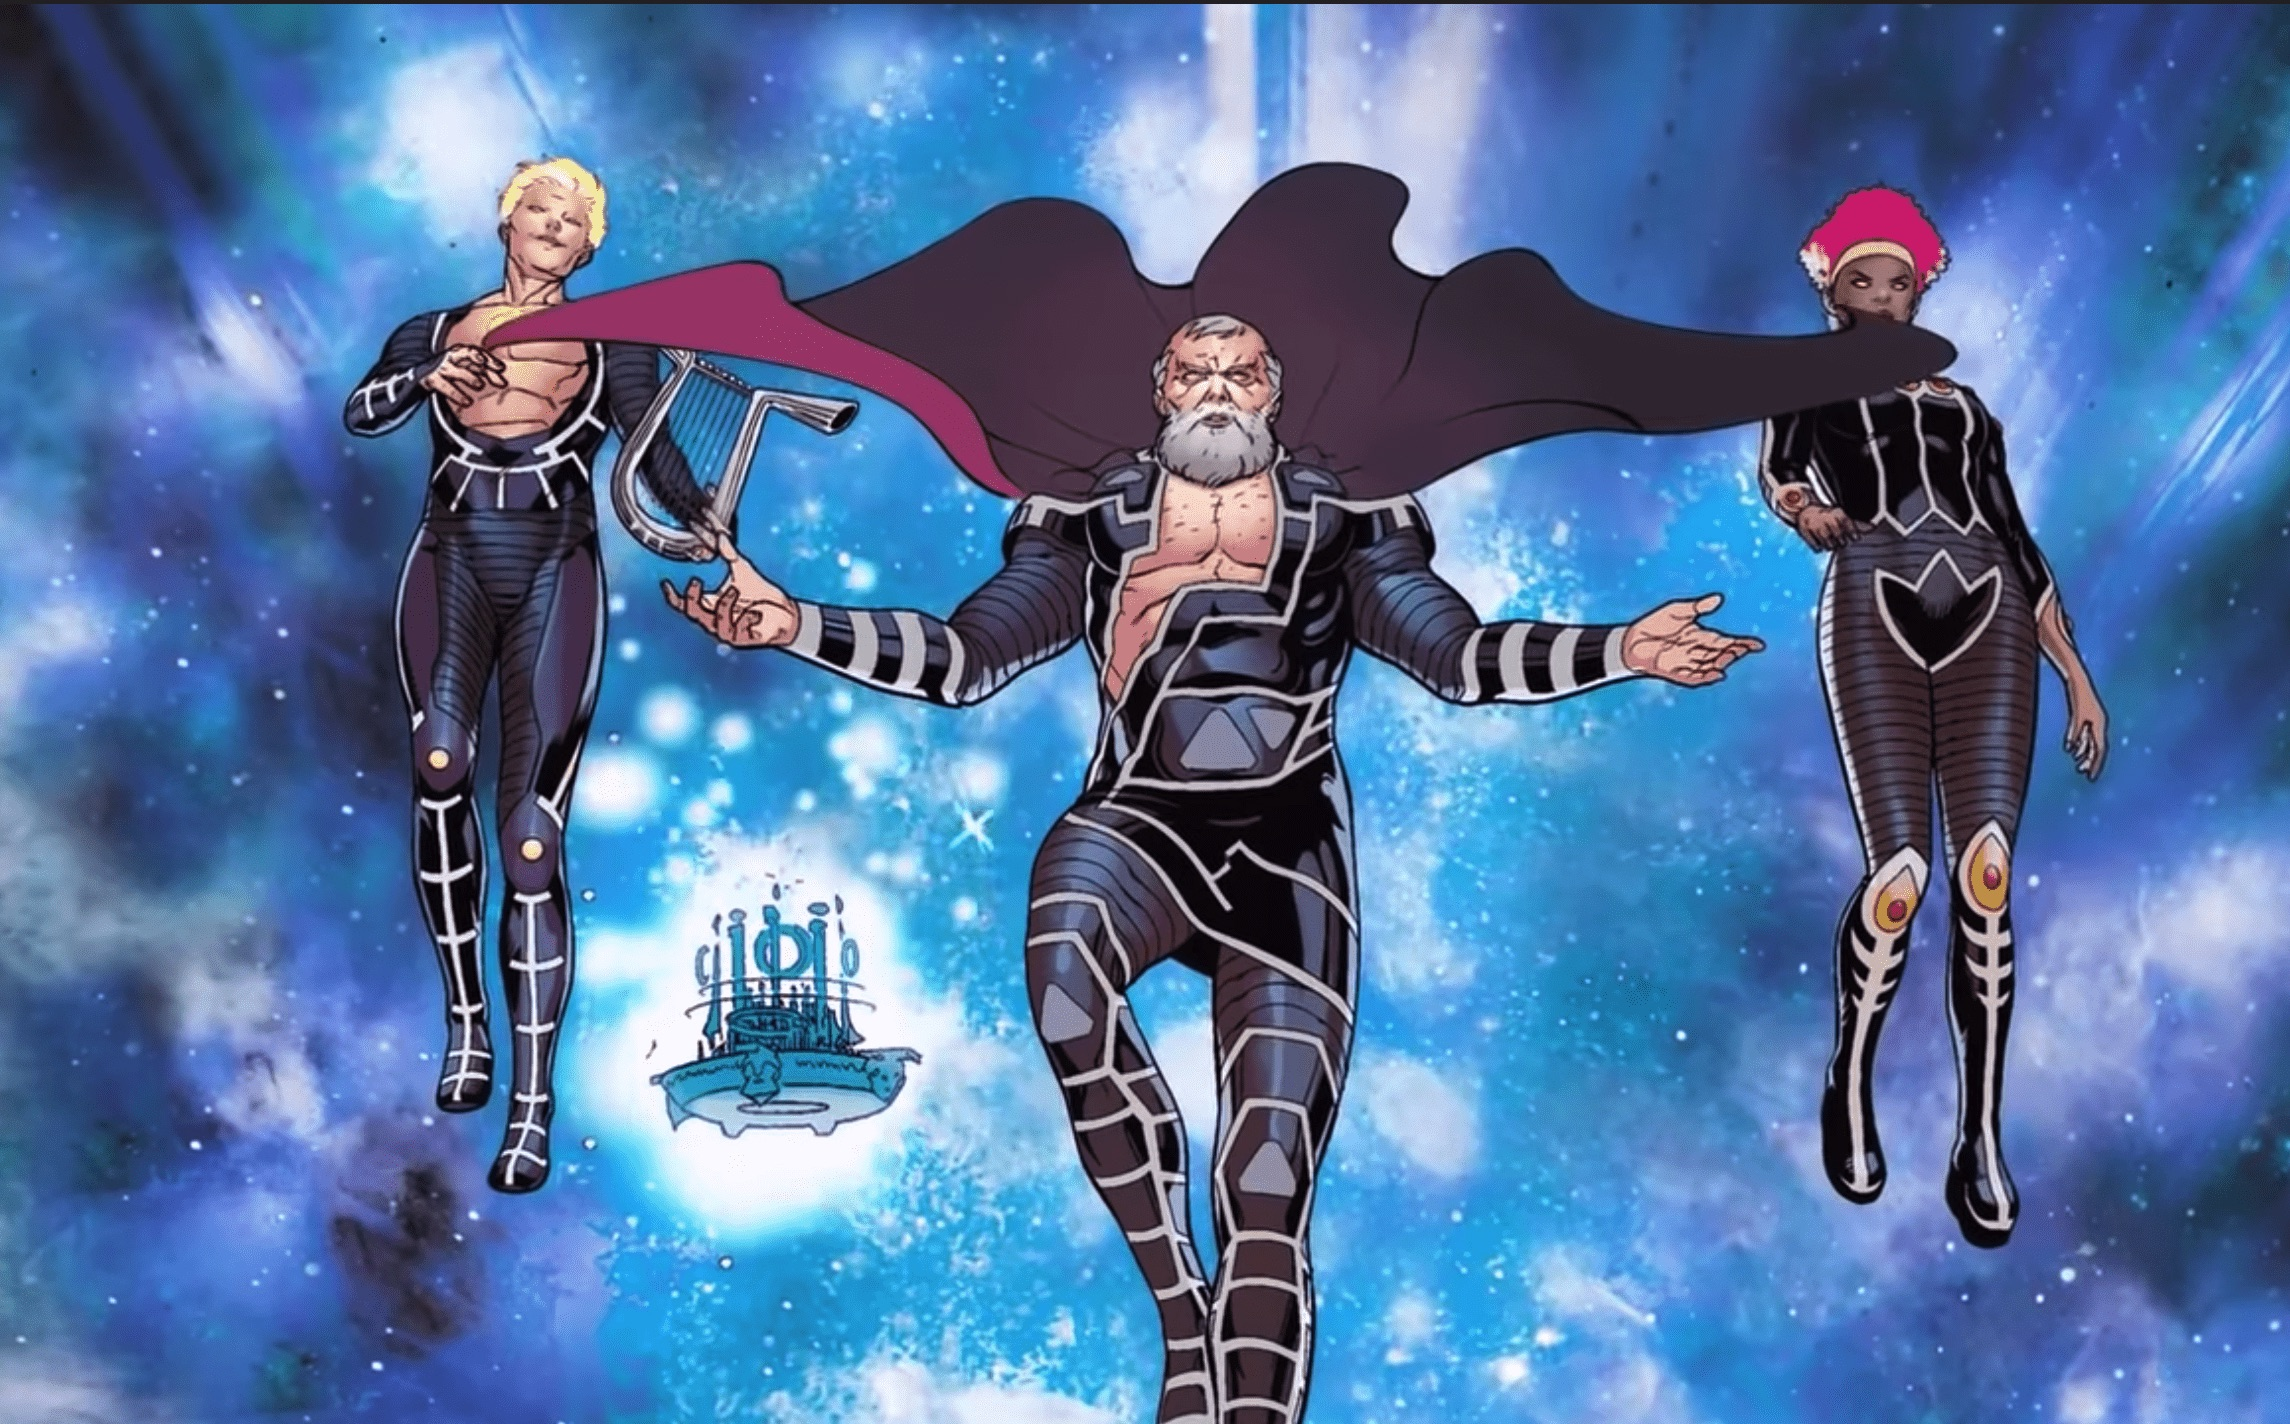 Buckle up for this 'Guardians of the Galaxy' trailer featuring Al Ewing, Darren Shane, and C.B. Cebulski